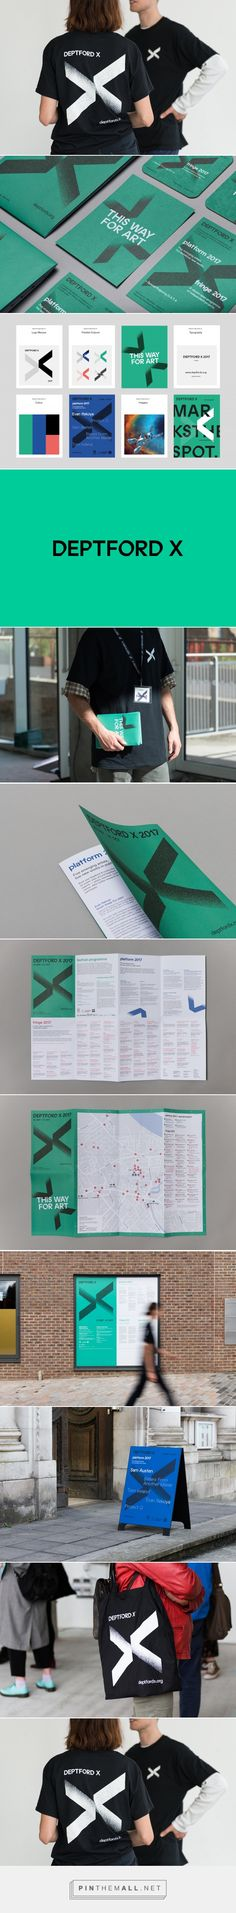 New Logo & Branding for Deptford X by IYA Studio — BP&O - created via https://pinthemall.net